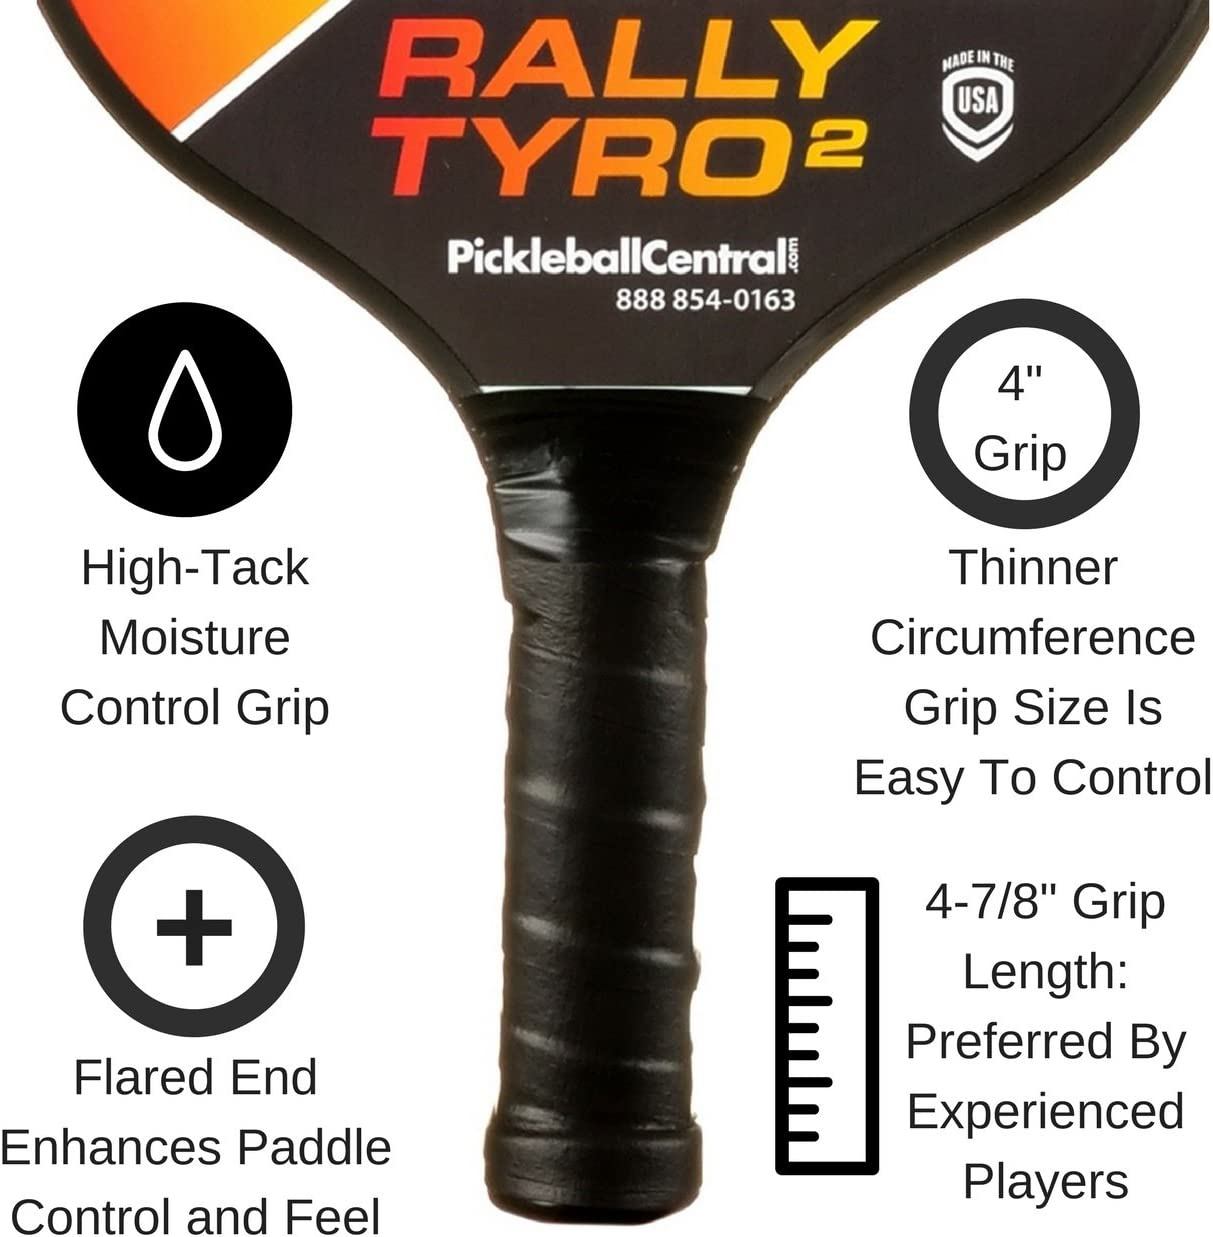 Amazon.com: Rally Tyro 2 Pickleball, portátil red y juego de ...